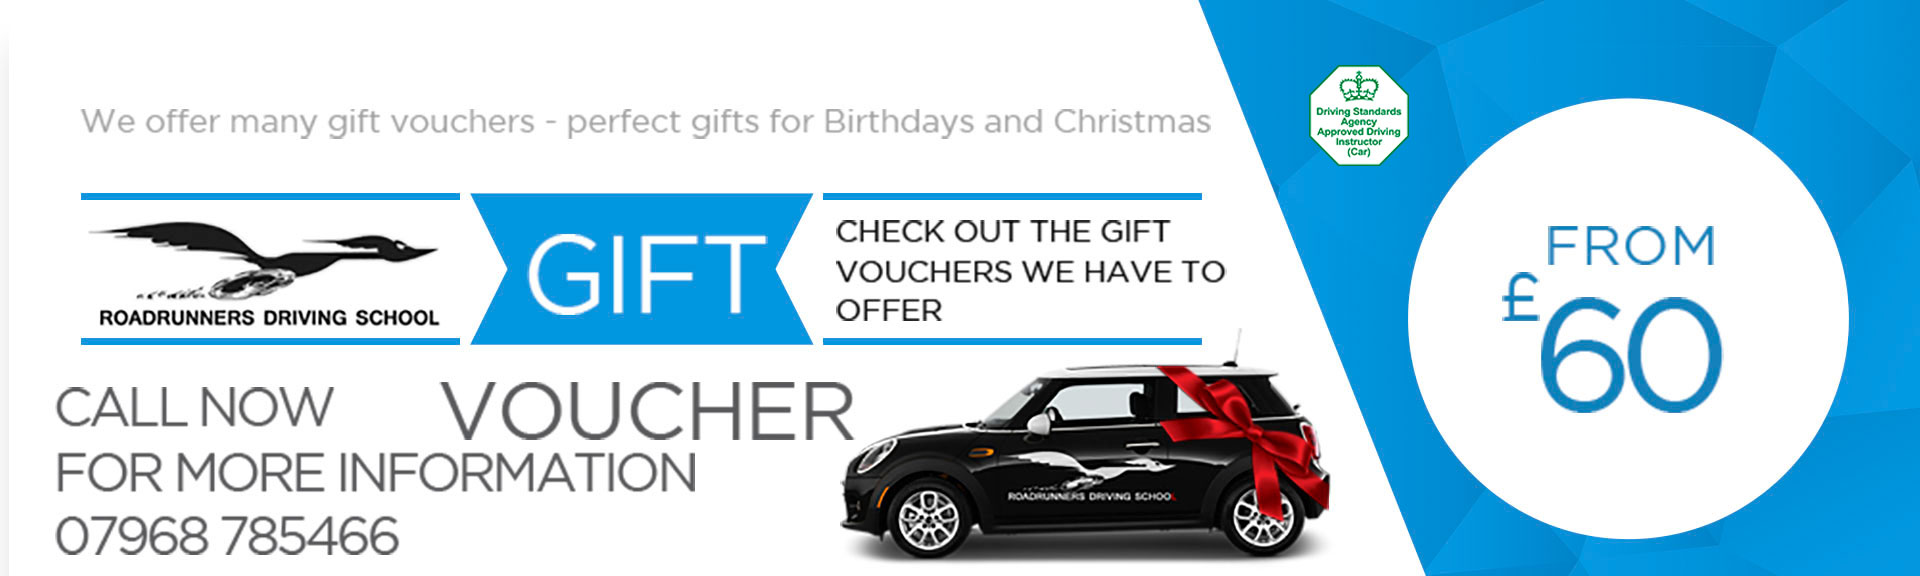 £60 Driving Lessons Gift vouchers For Roadrunners Driving School Kidderminster